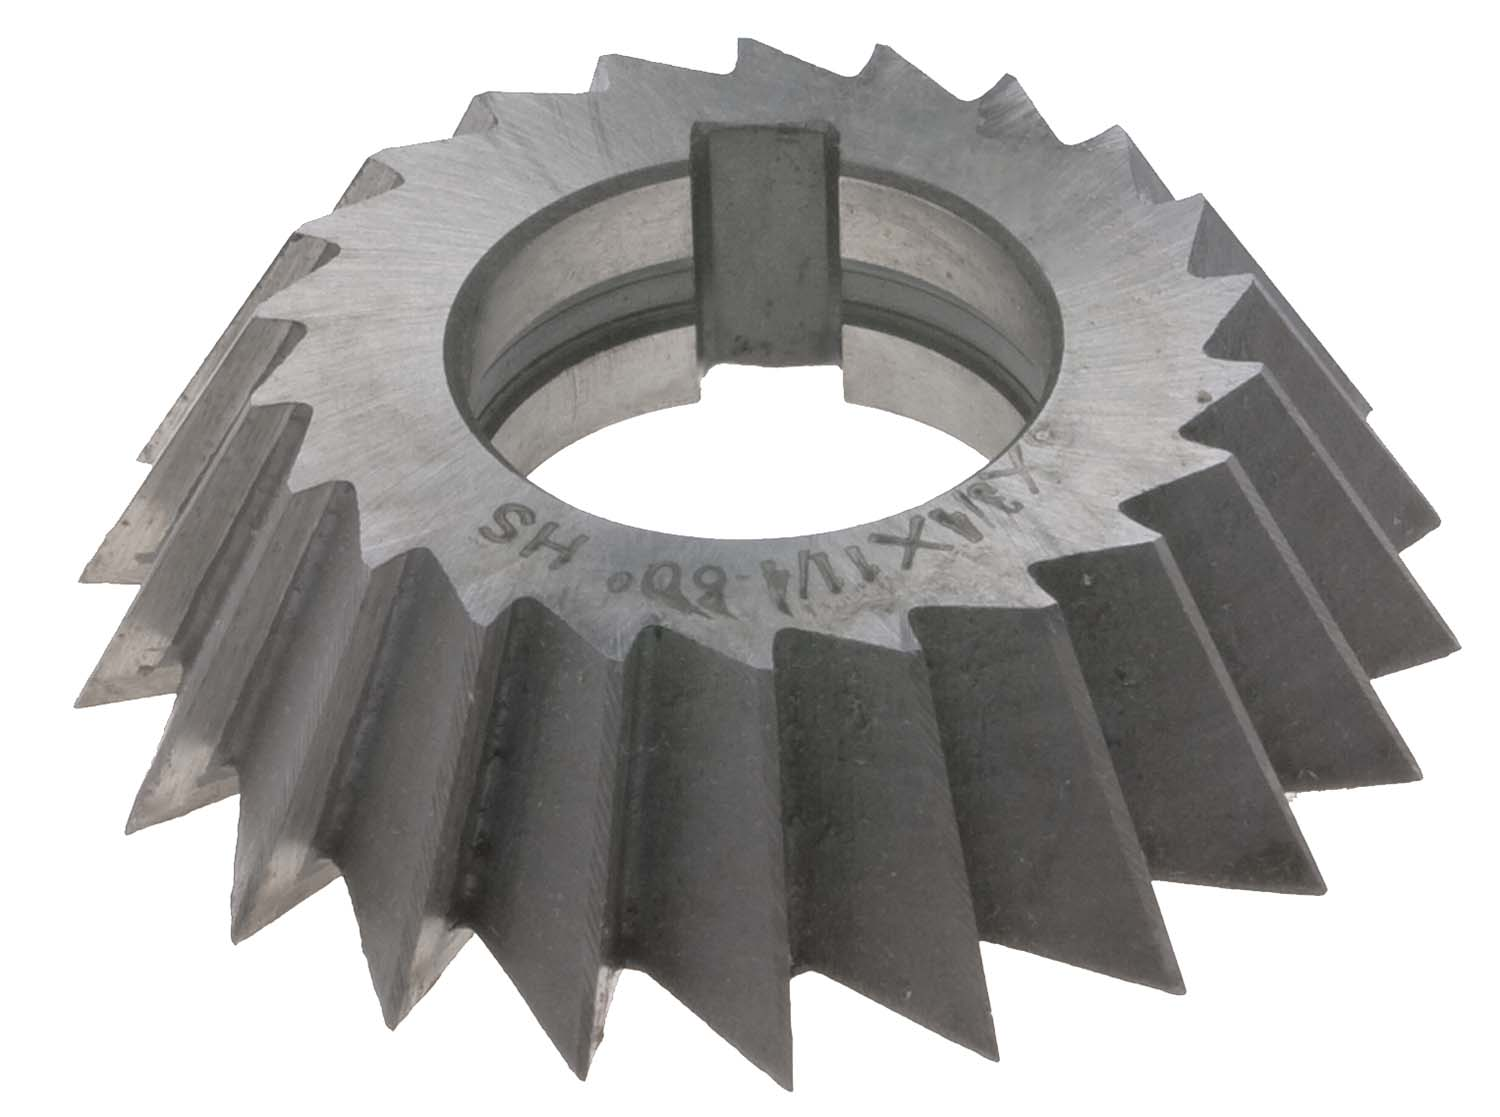 "2-1/2 X 1/2 X 7/8""  Left Hand 60 Degree Single Angle Cutter, High Speed Steel"